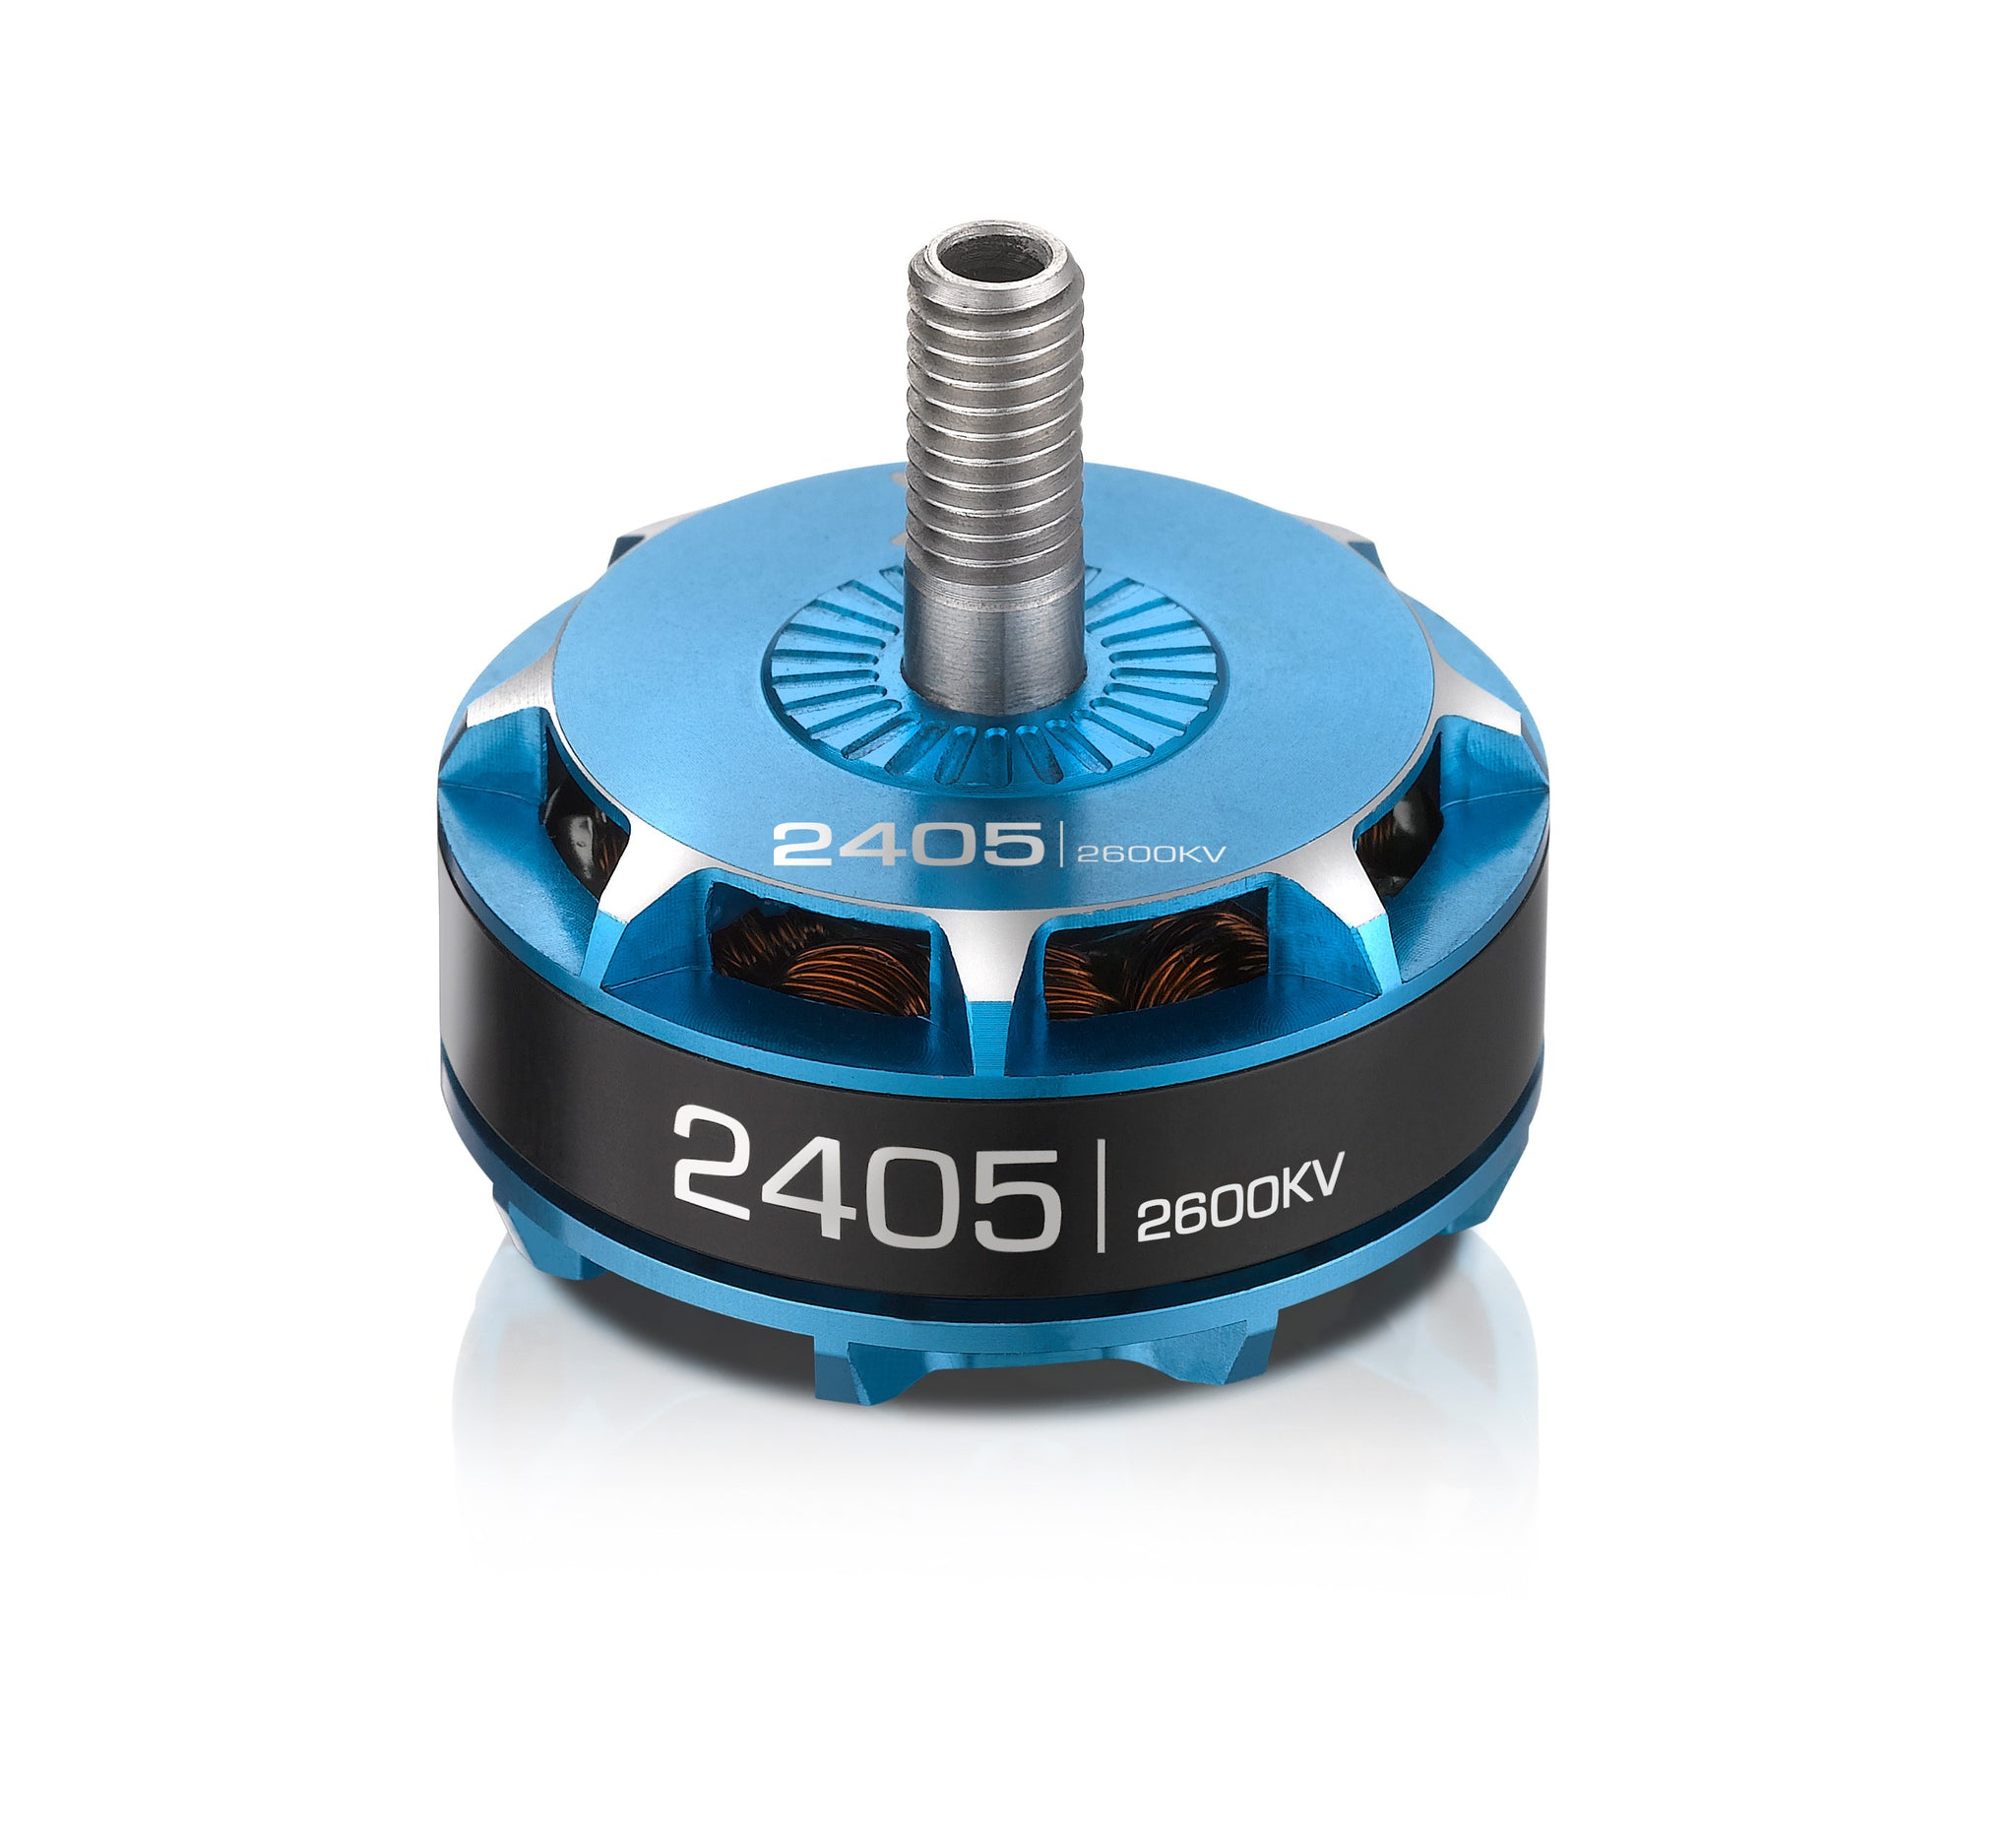 Xrotor 2405 Titanium Motor for Drone Racing